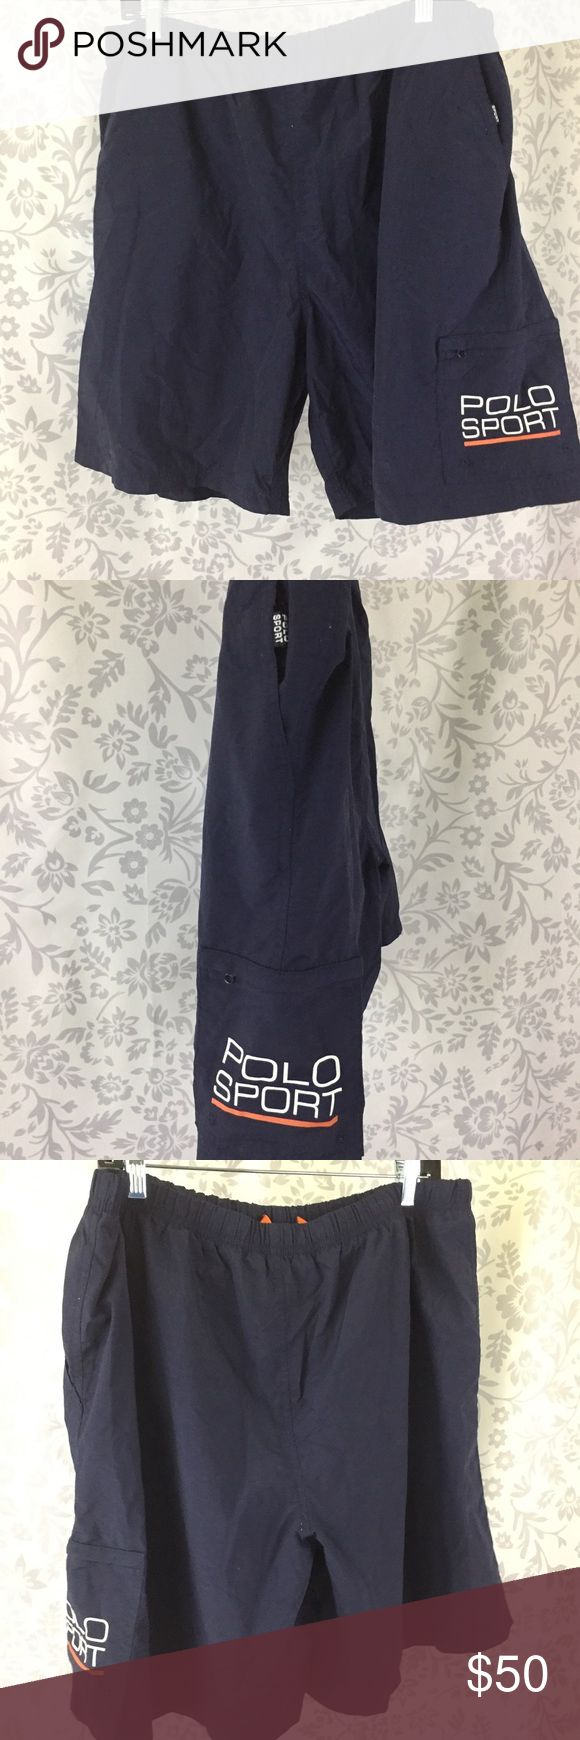 "Polo sport RL vintage 90s swim trunk nylon blue XL Awesome throw back large POLO SPORT written out on the side cargo pocket.  Netting inside with drawstring.   Gently preloved.   Approximate flat lay measurements: Inseam: 7.5"" Waist flat lay : 17"" Rise: 13""  A Polo by Ralph Lauren Swim Swim Trunks"